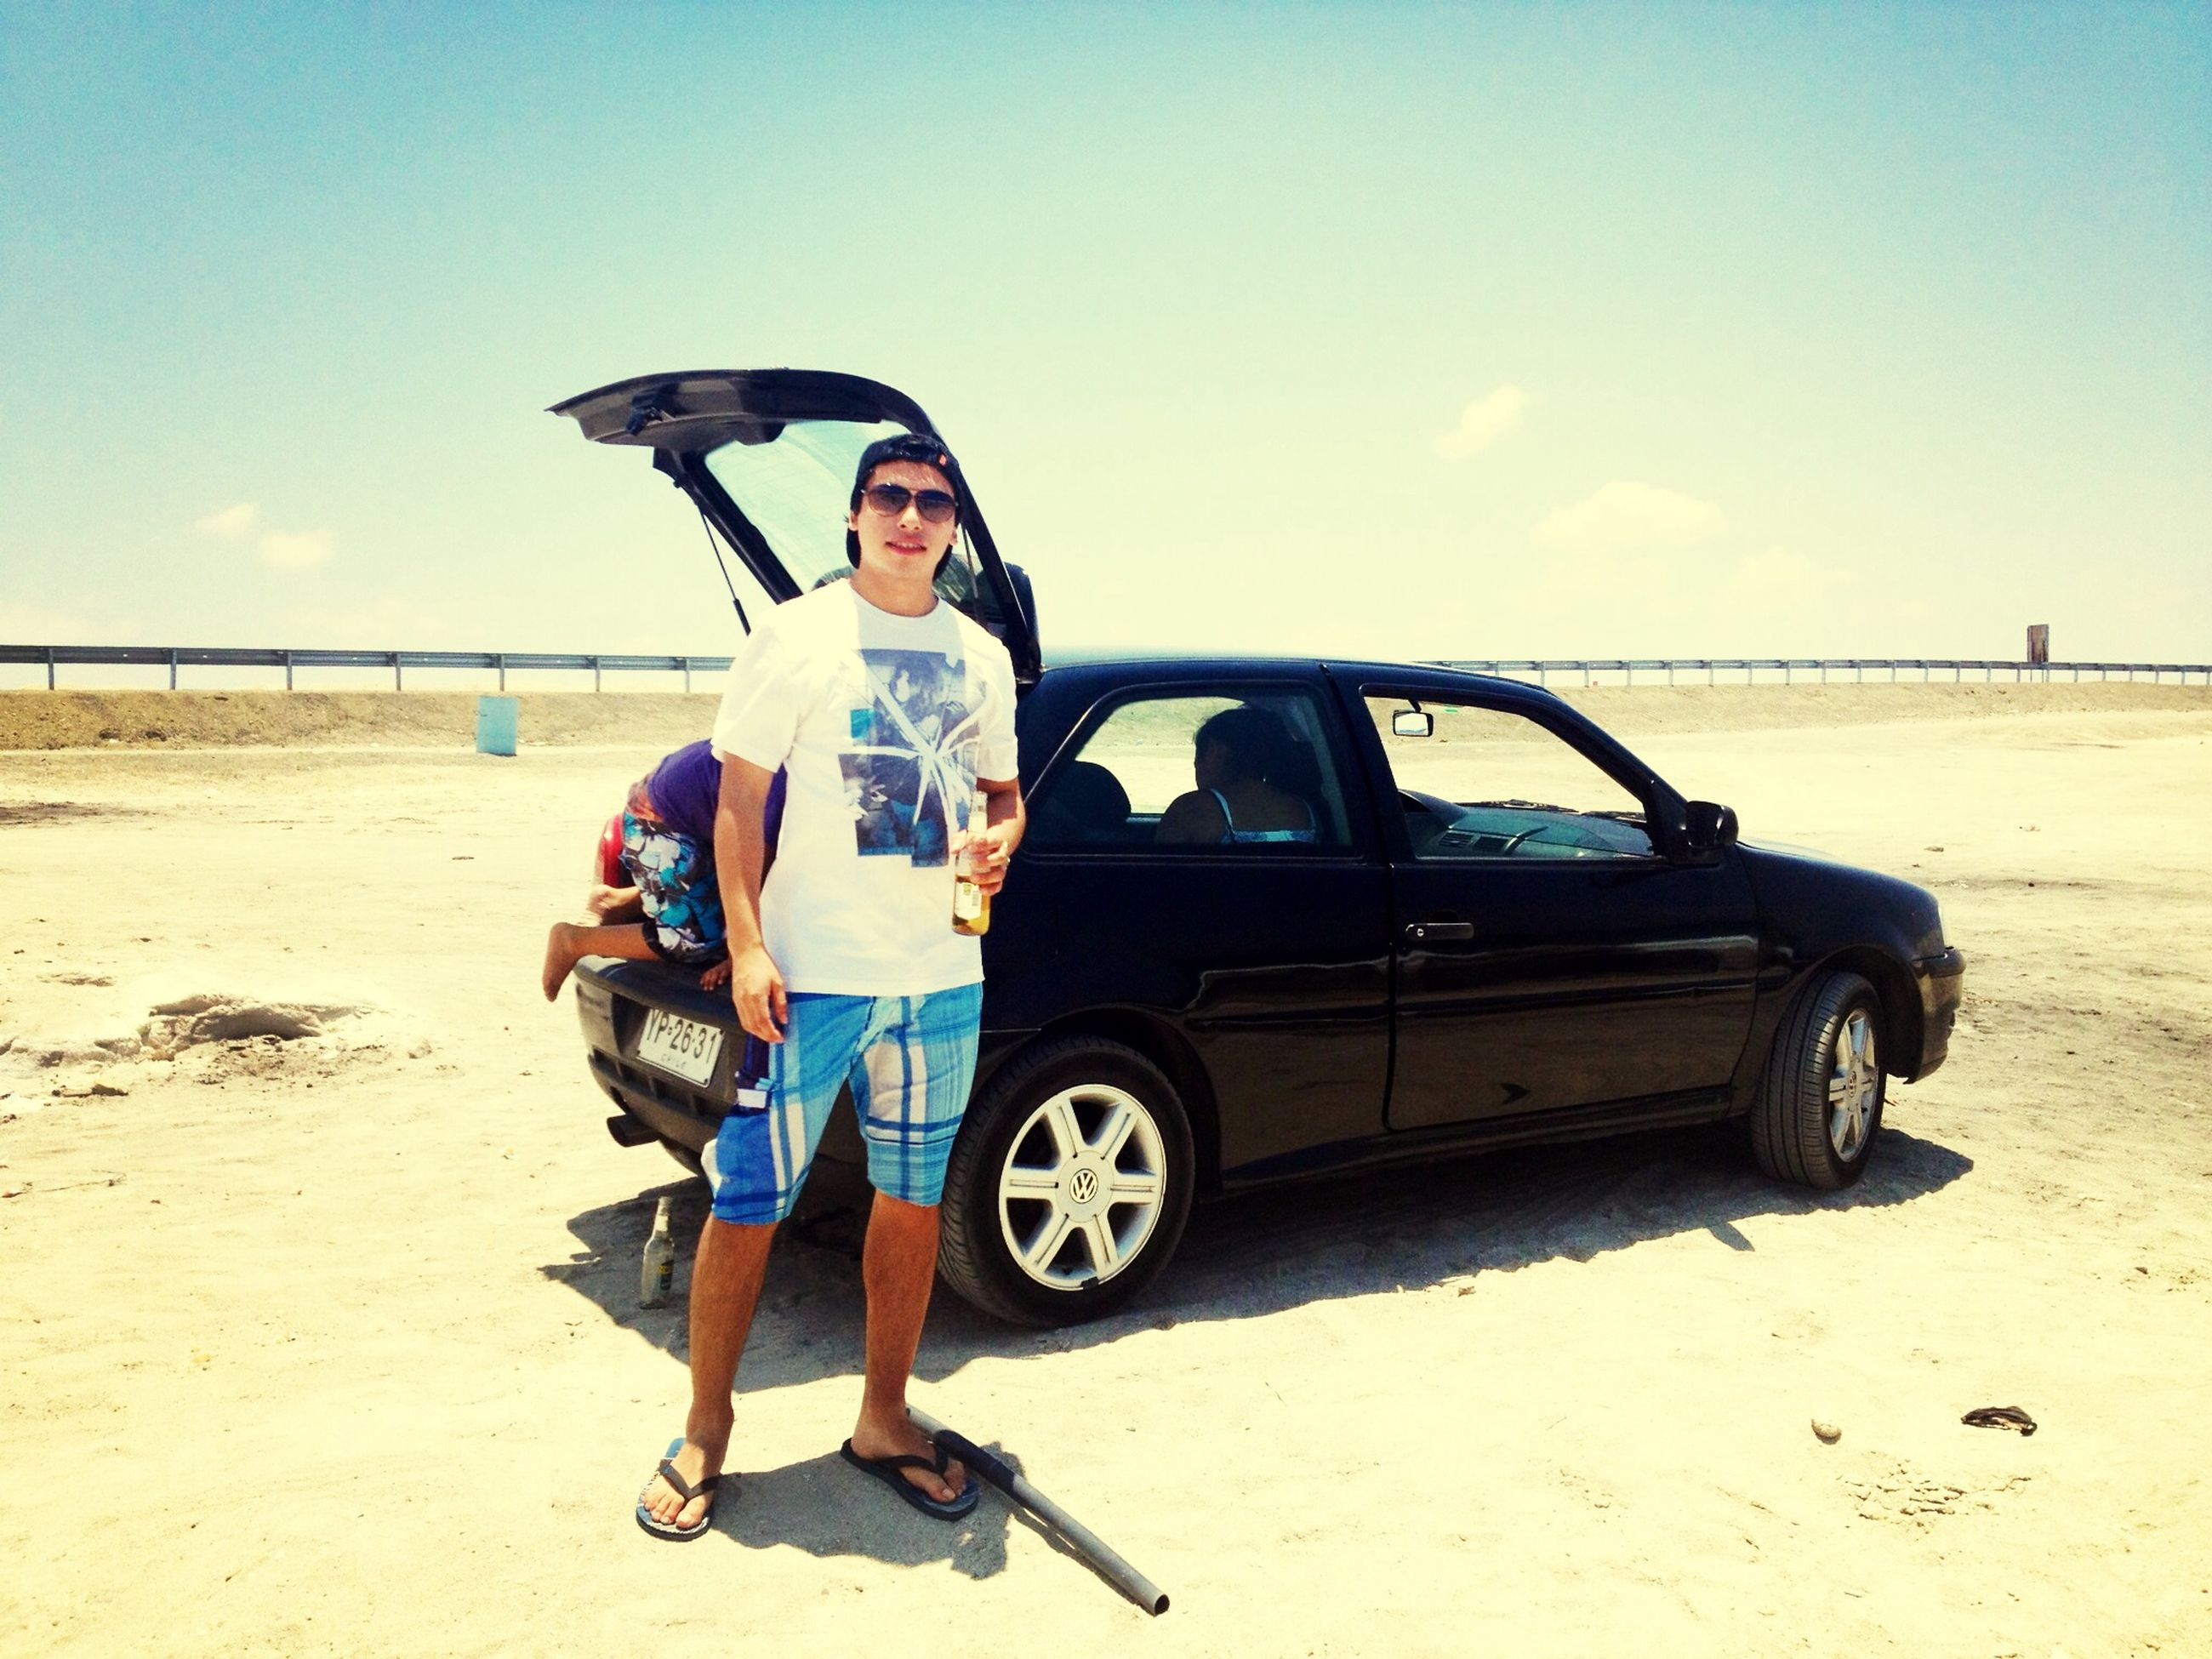 sand, beach, full length, lifestyles, leisure activity, casual clothing, shore, sky, person, sea, young adult, sunlight, transportation, land vehicle, mode of transport, sunglasses, travel, vacations